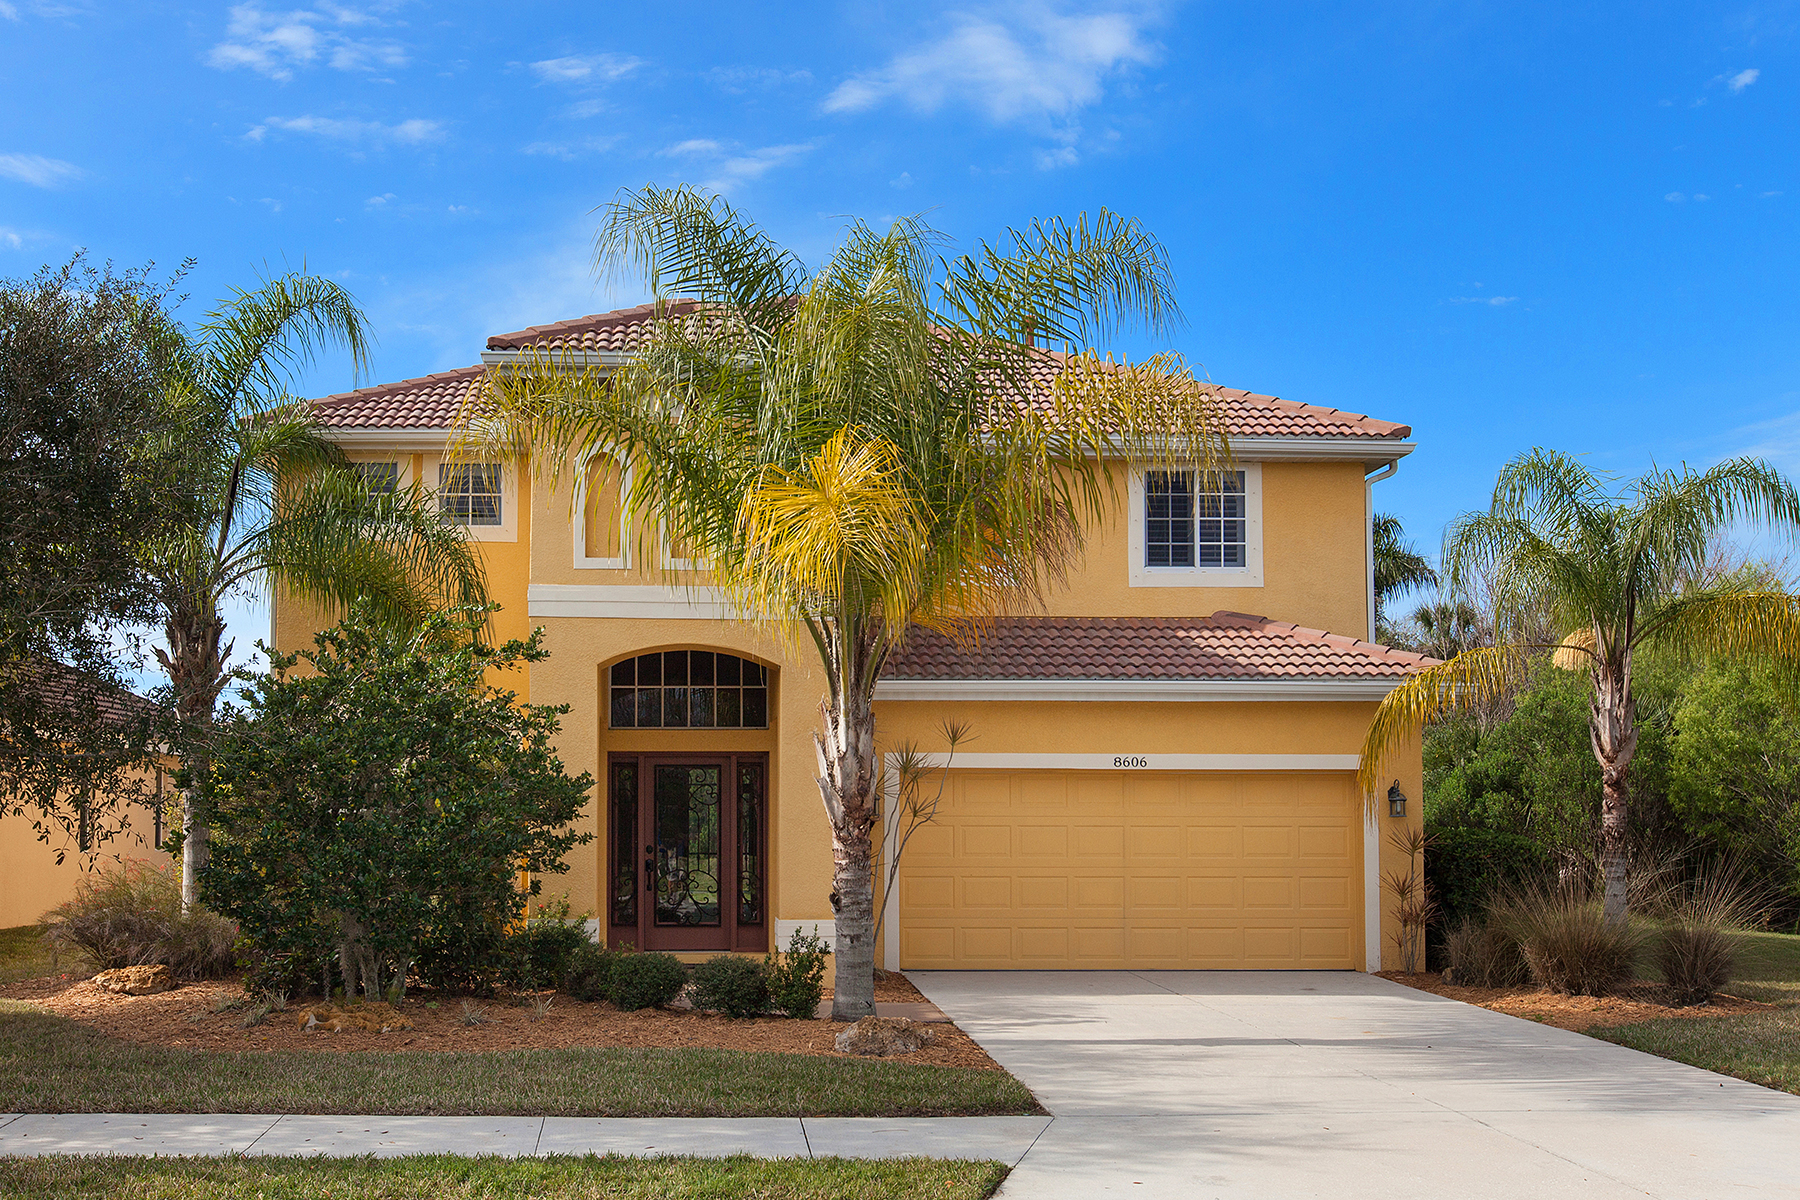 Single Family Home for Sale at STONEYBROOK AT HERITAGE HARBOUR 8606 Stone Harbour Loop Bradenton, Florida, 34212 United States